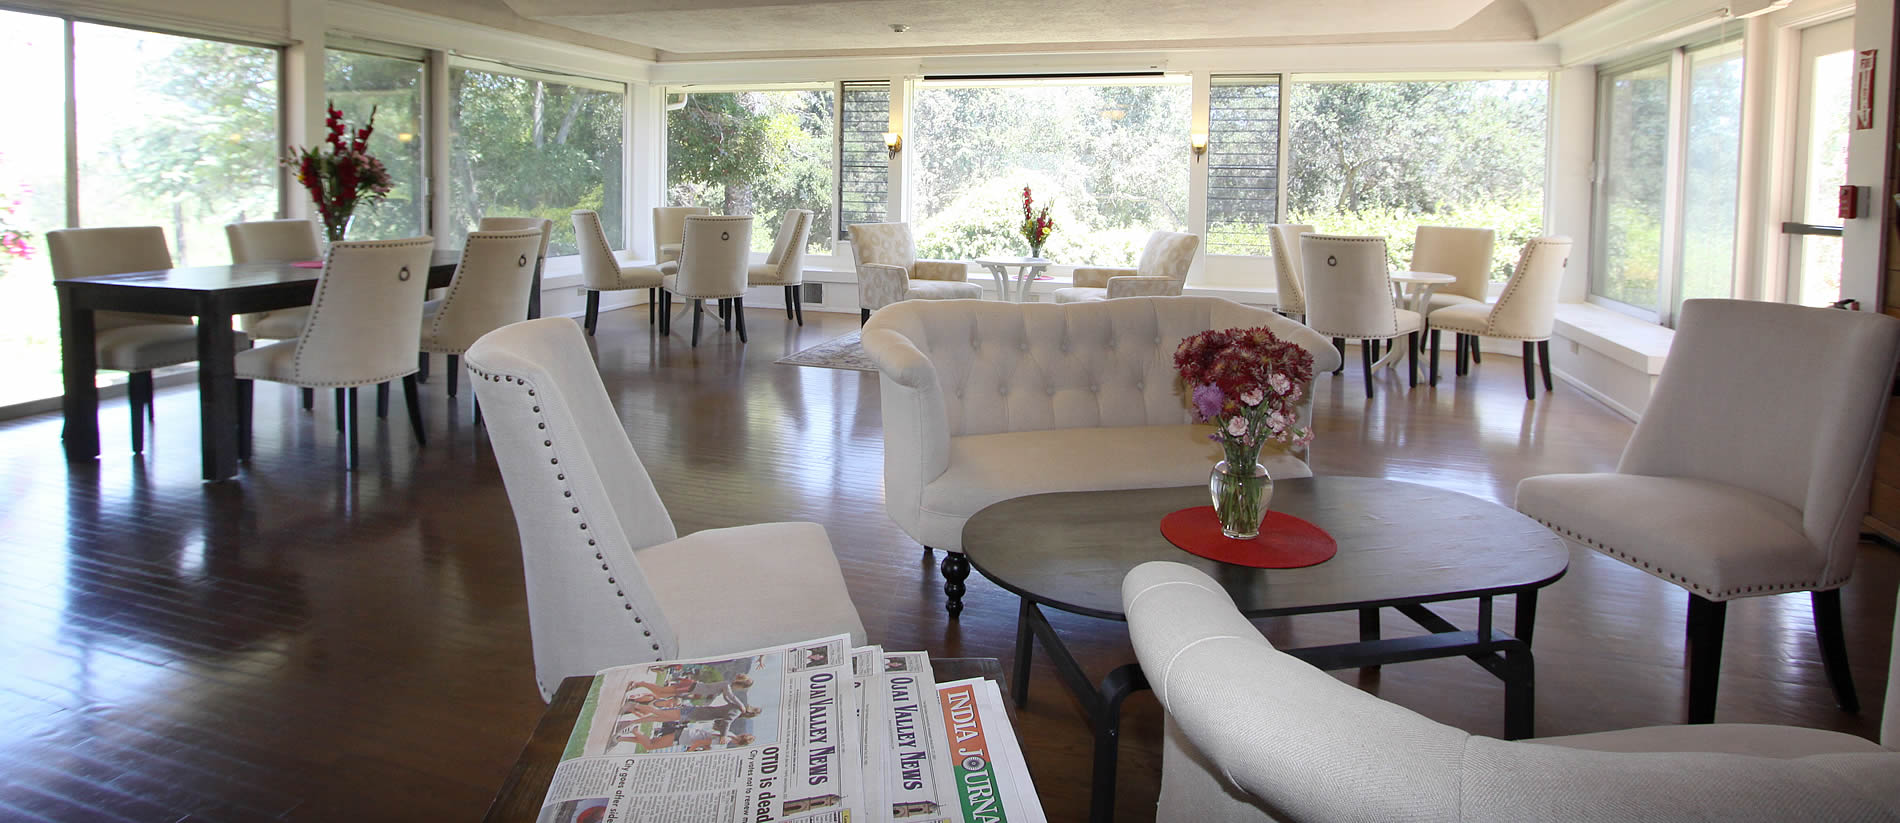 ojai retreat breakfast room